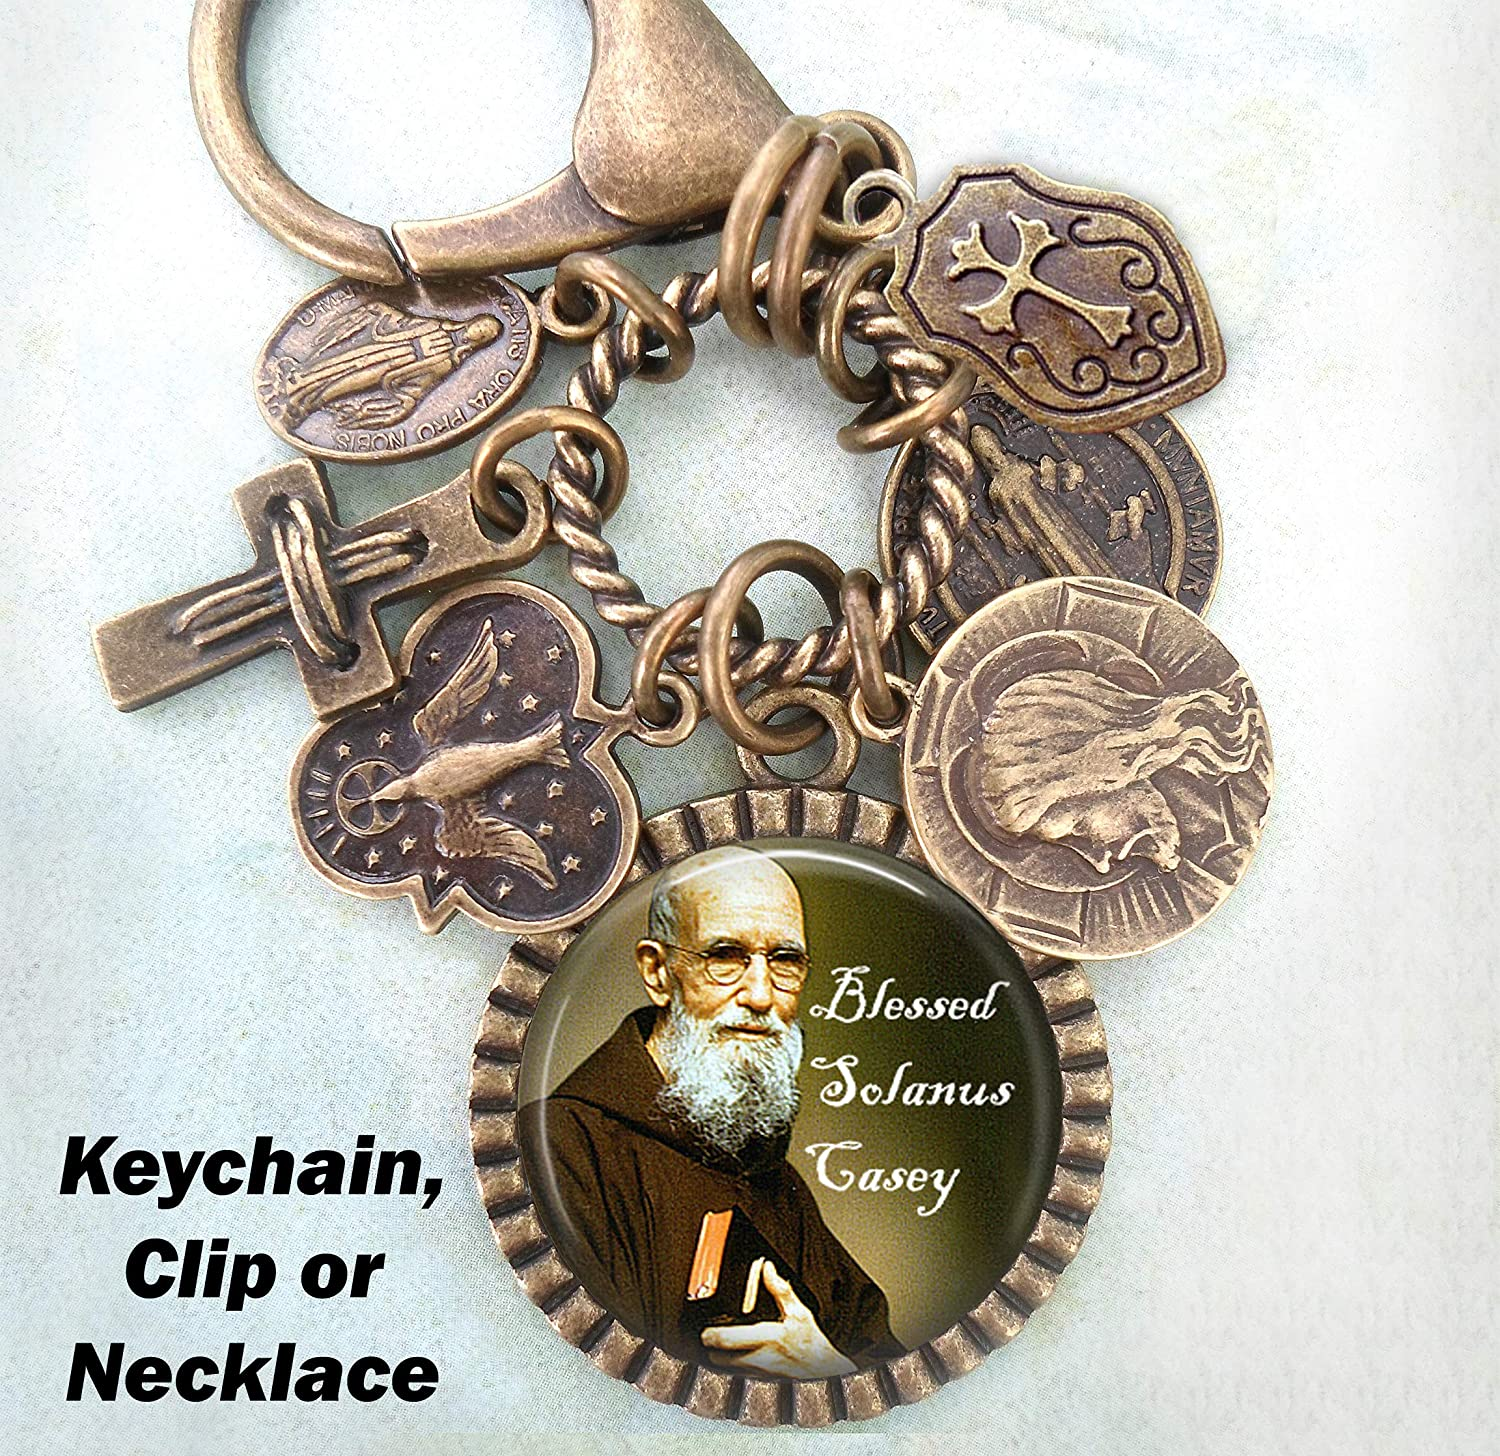 Blessed Father Solanus Casey Keychain Catholic Jewelry Clip or Necklace Patron Saint Confirmation Gift